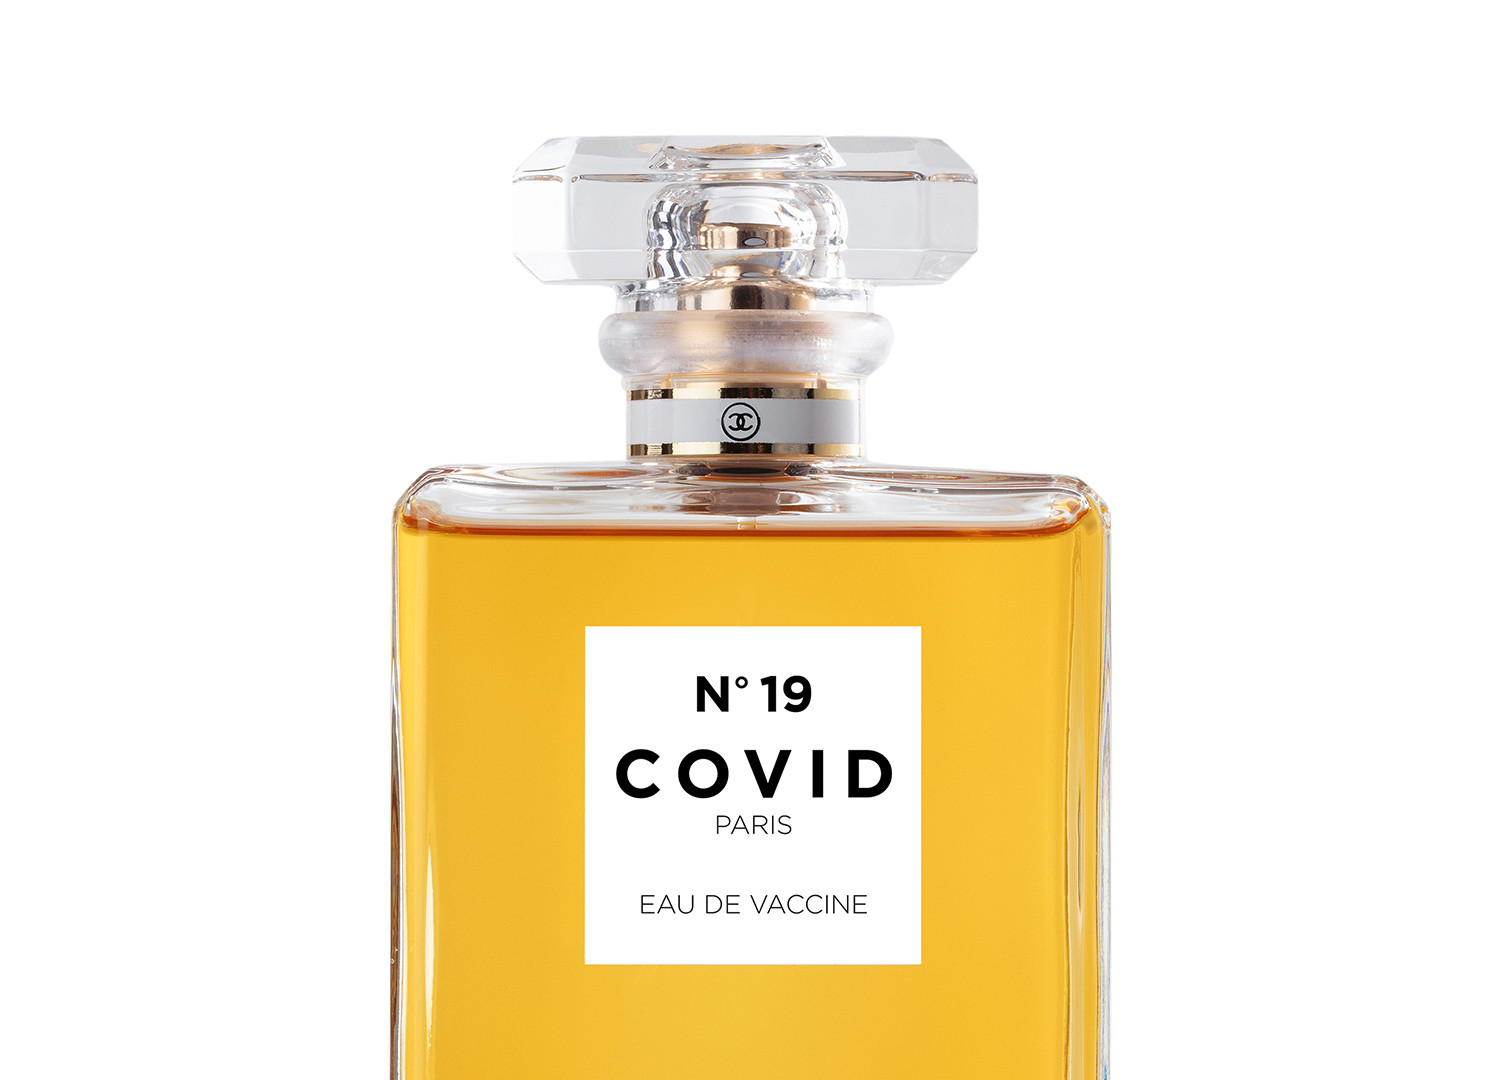 COVID No.19 EAU DE VACCINE (White)